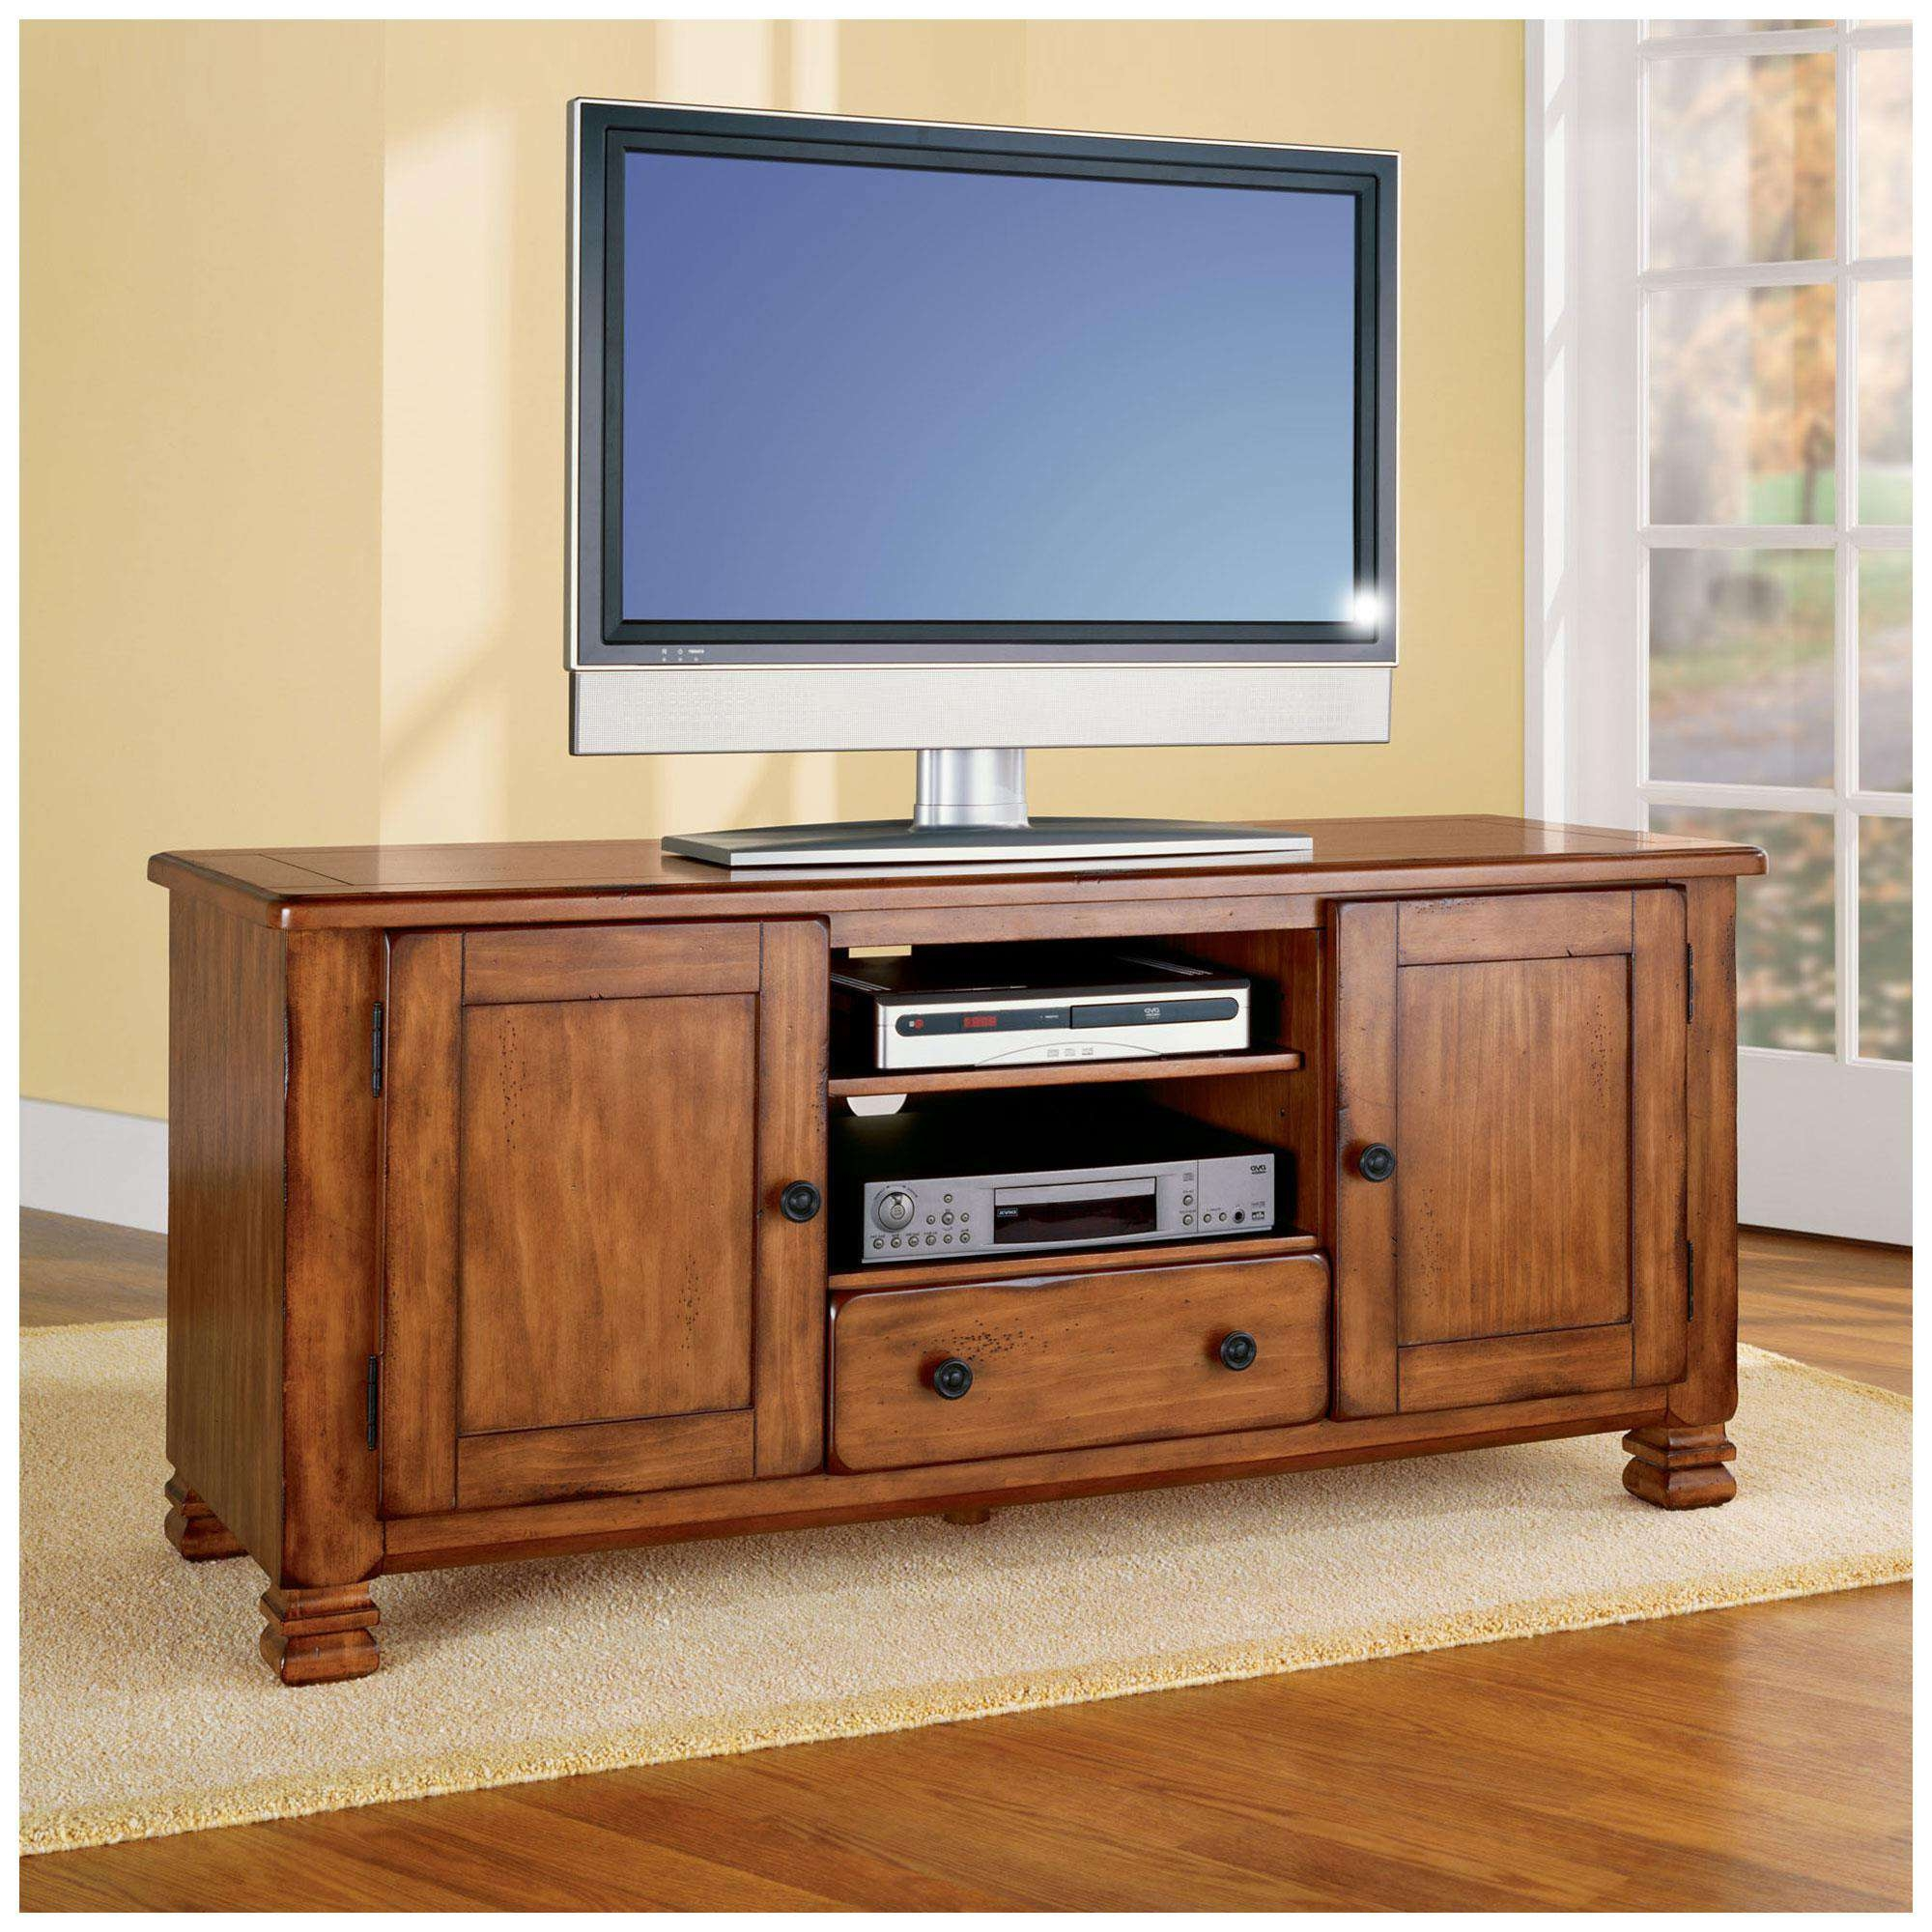 Open Tv Stands Uncategorized Used File Cabinets For Sale Best For Wooden Tv Stands For Flat Screens (View 13 of 15)